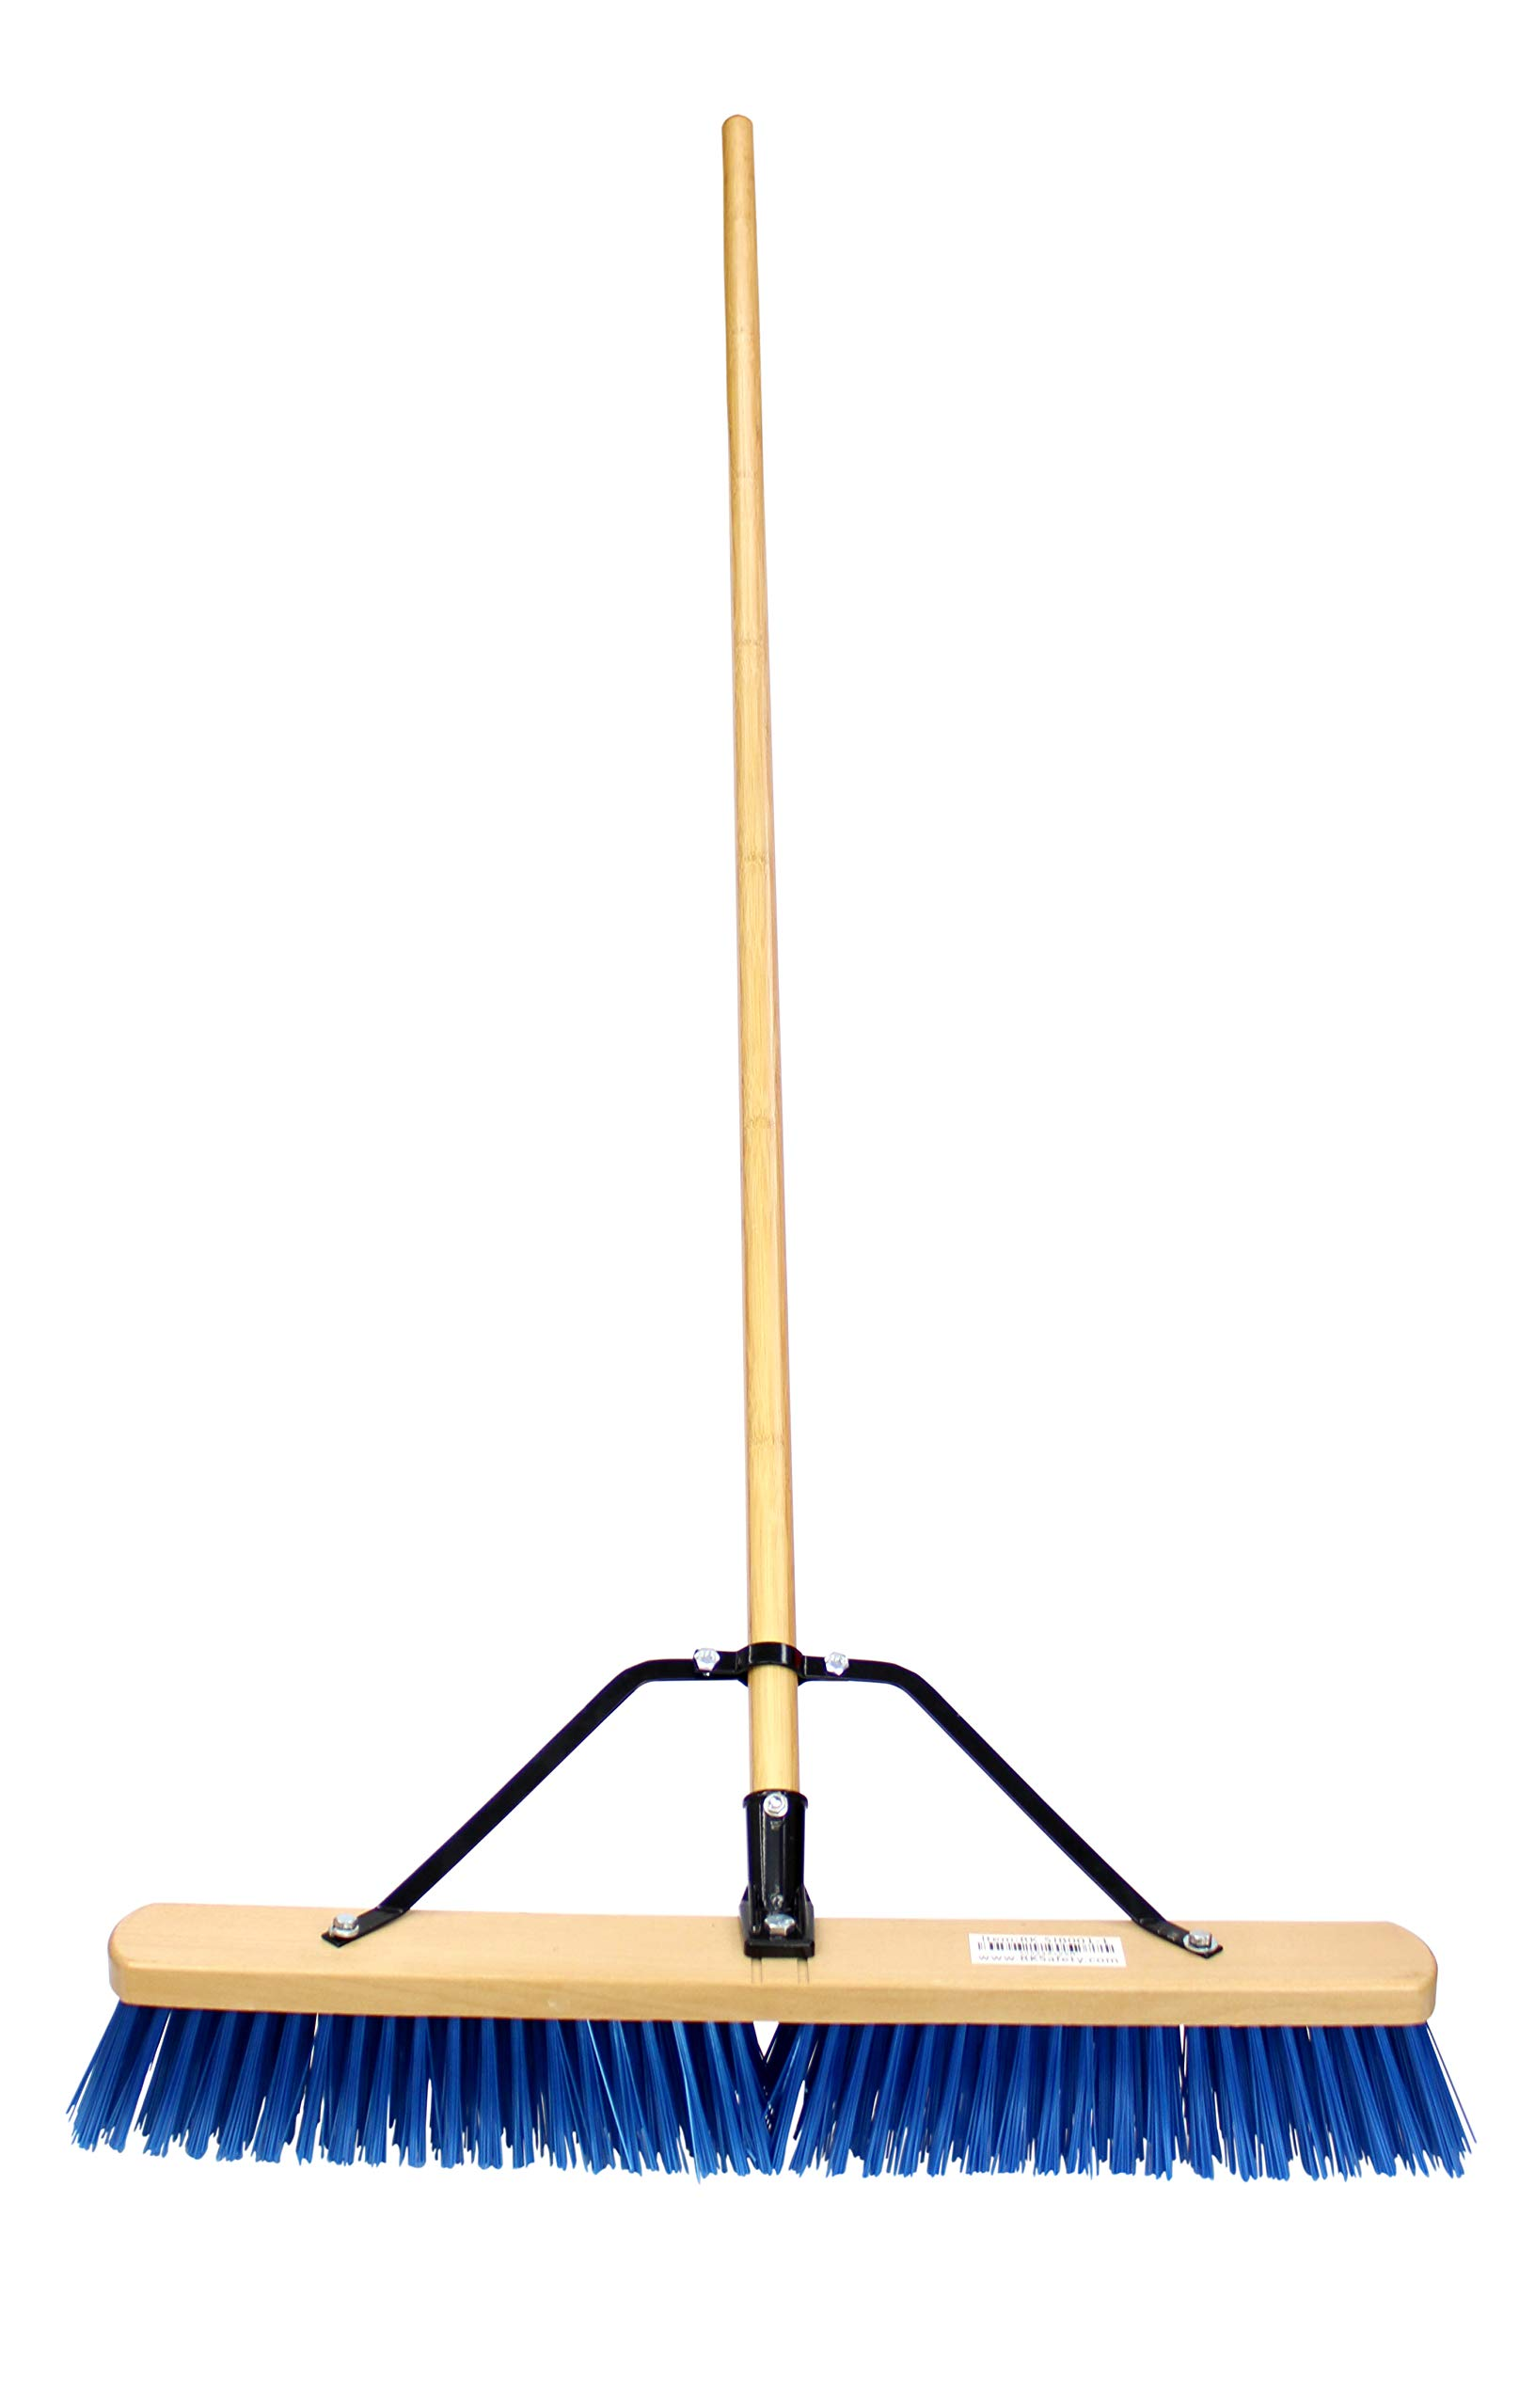 24'' RK Safety Wooden Push Broom With Brace and Bamboo Handle (Pack of 6) by RK SAFETY